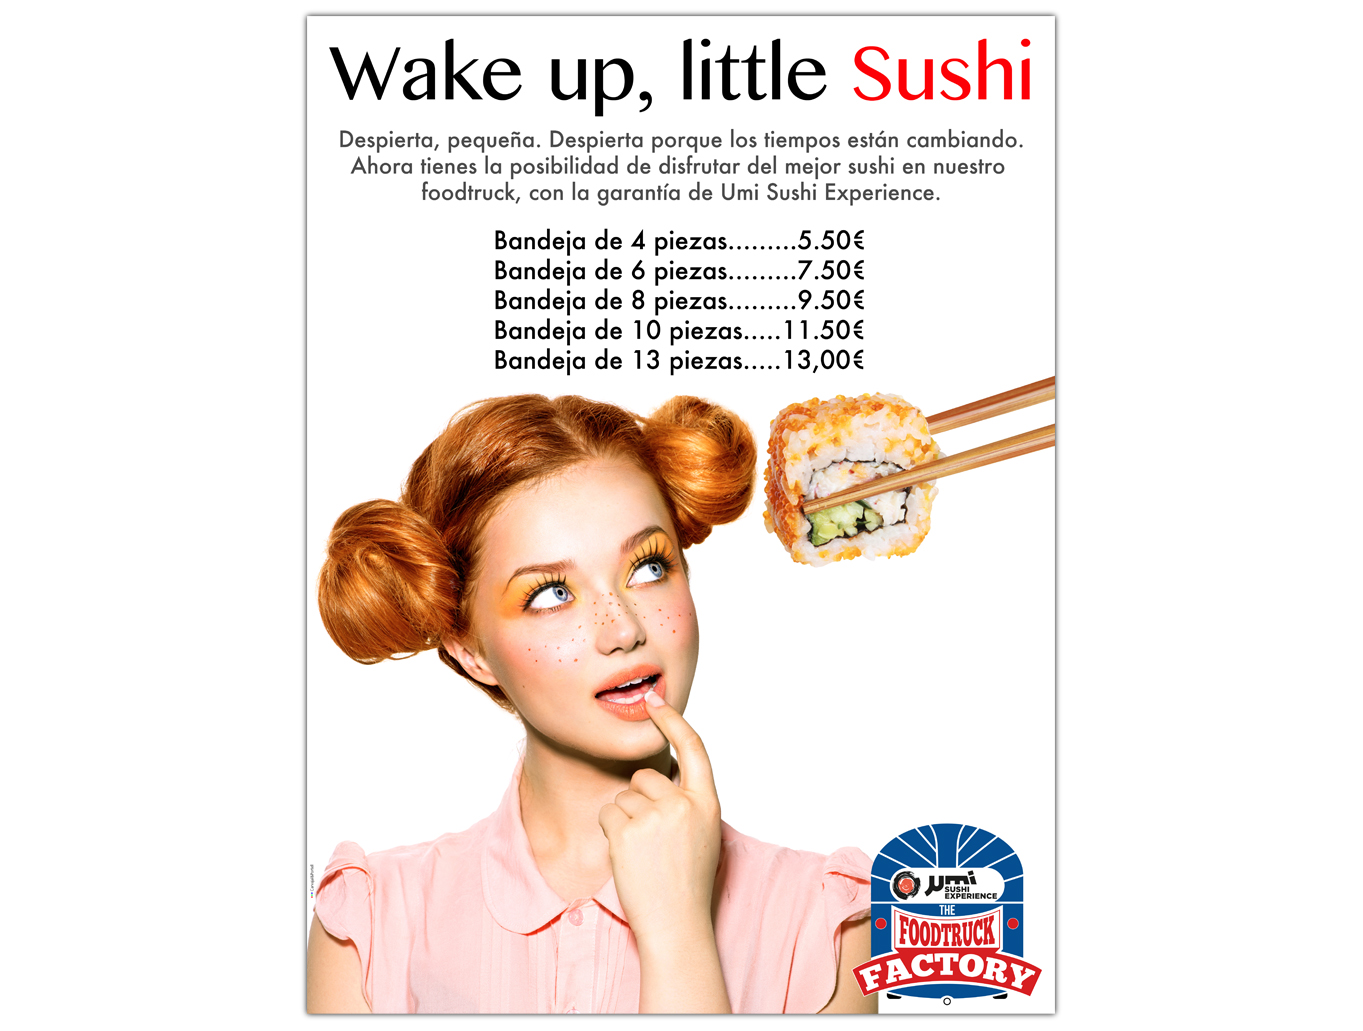 Wake up little Sushi